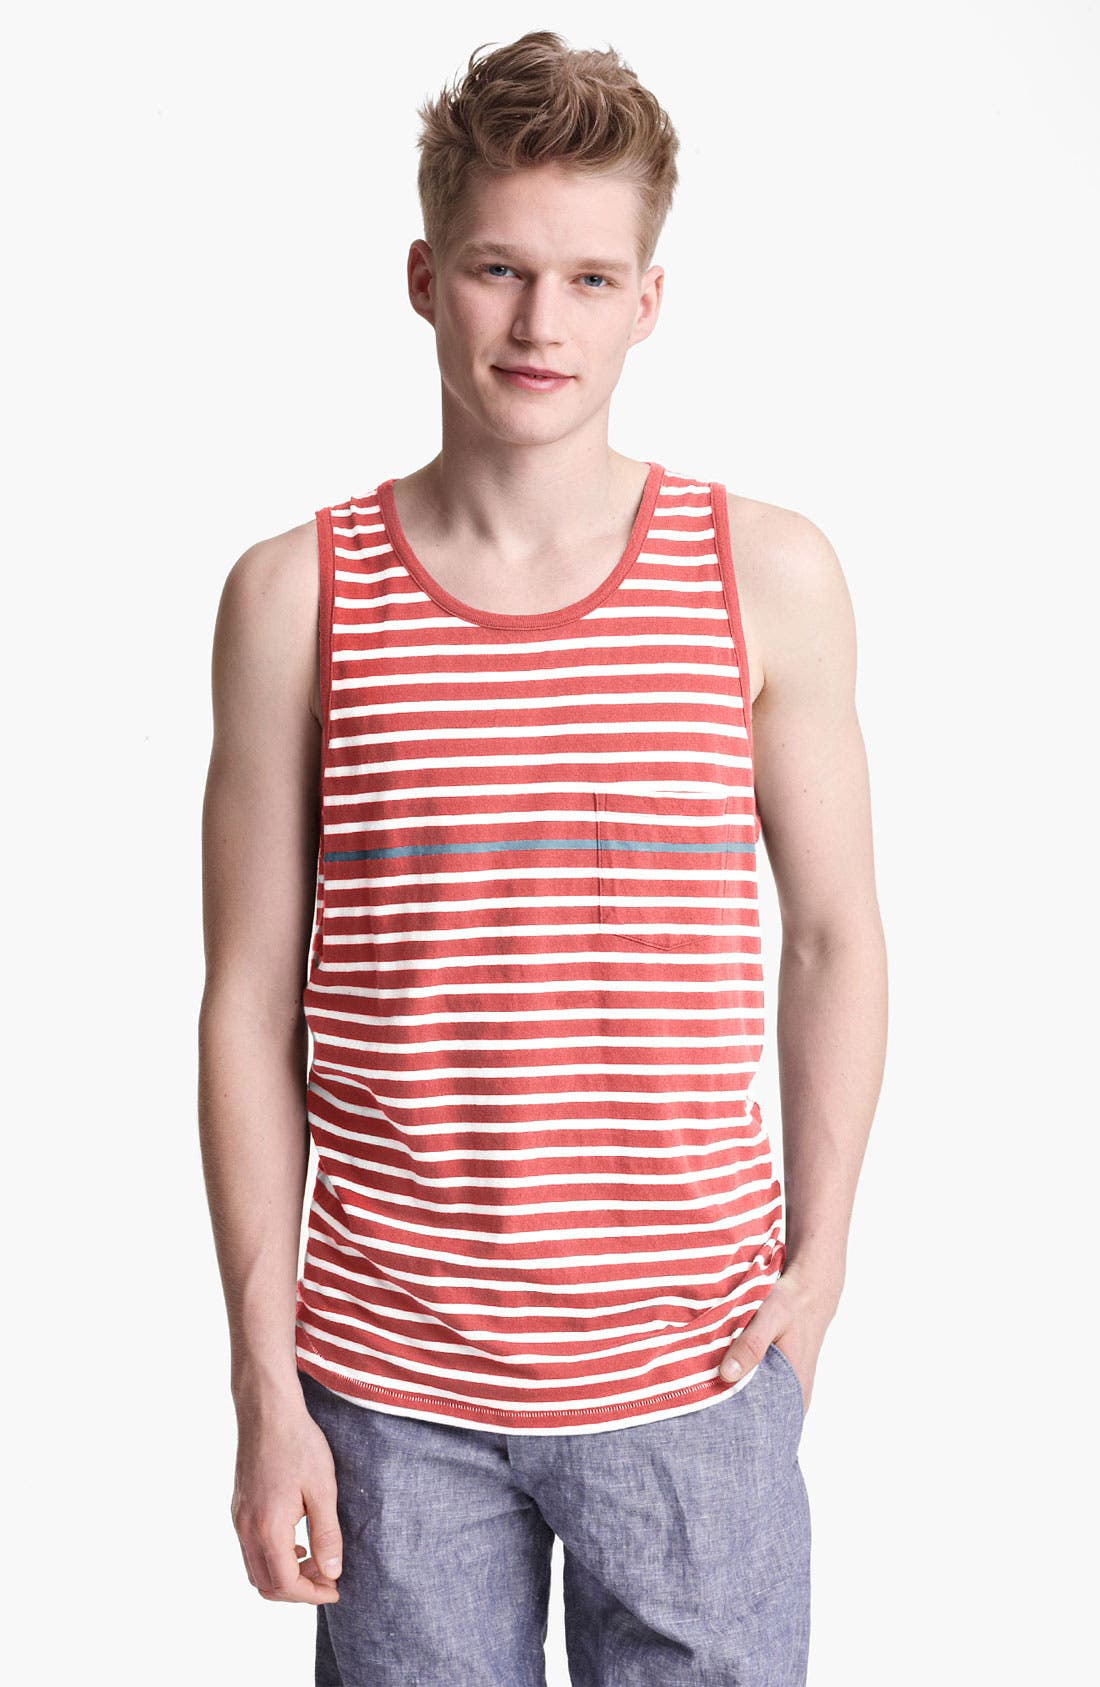 Main Image - rag & bone 'Perfect Stripe' Tank Top